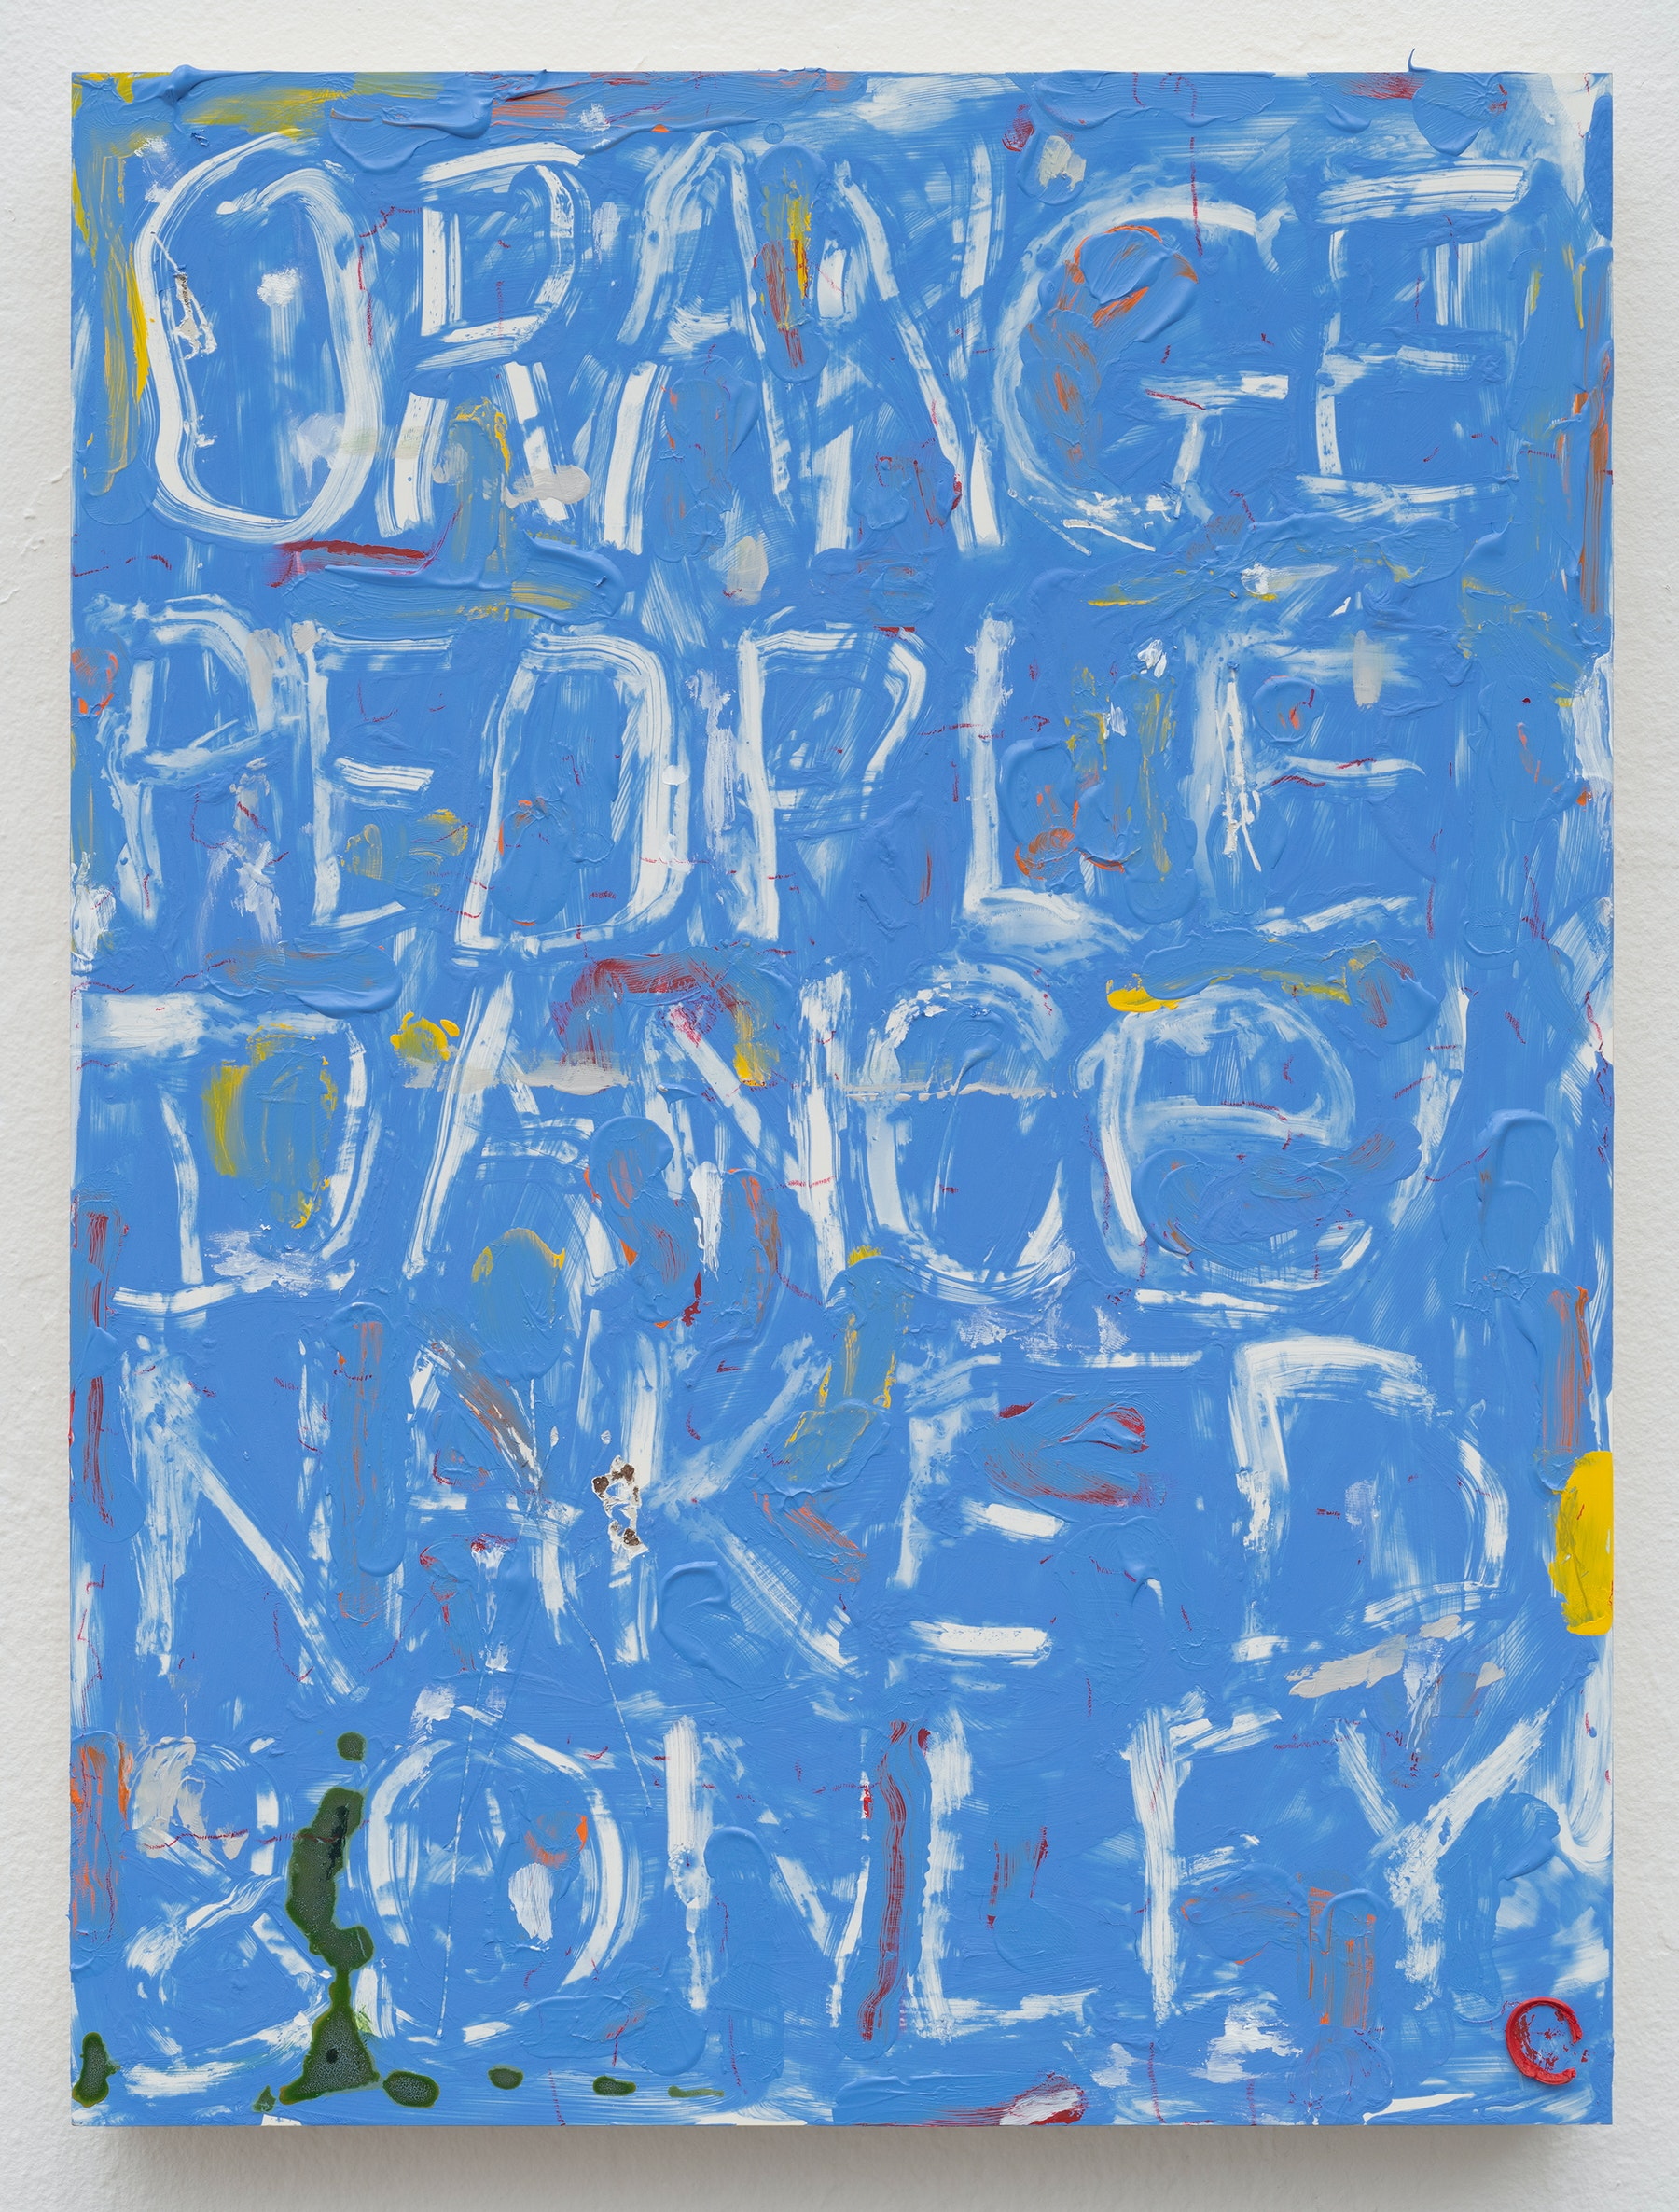 """Pope.L """"Blue Painting with Words and Other Things,"""" 2019 Acrylic, oil, ink, and pastel on panel 16 x 12 x 1.5"""" [HxWxD] (40.64 x 30.48 x 3.81 cm) Inventory #POP344 Courtesy of the Artist and Vielmetter Los Angeles. © Pope.L Photos credit: James Prinz"""